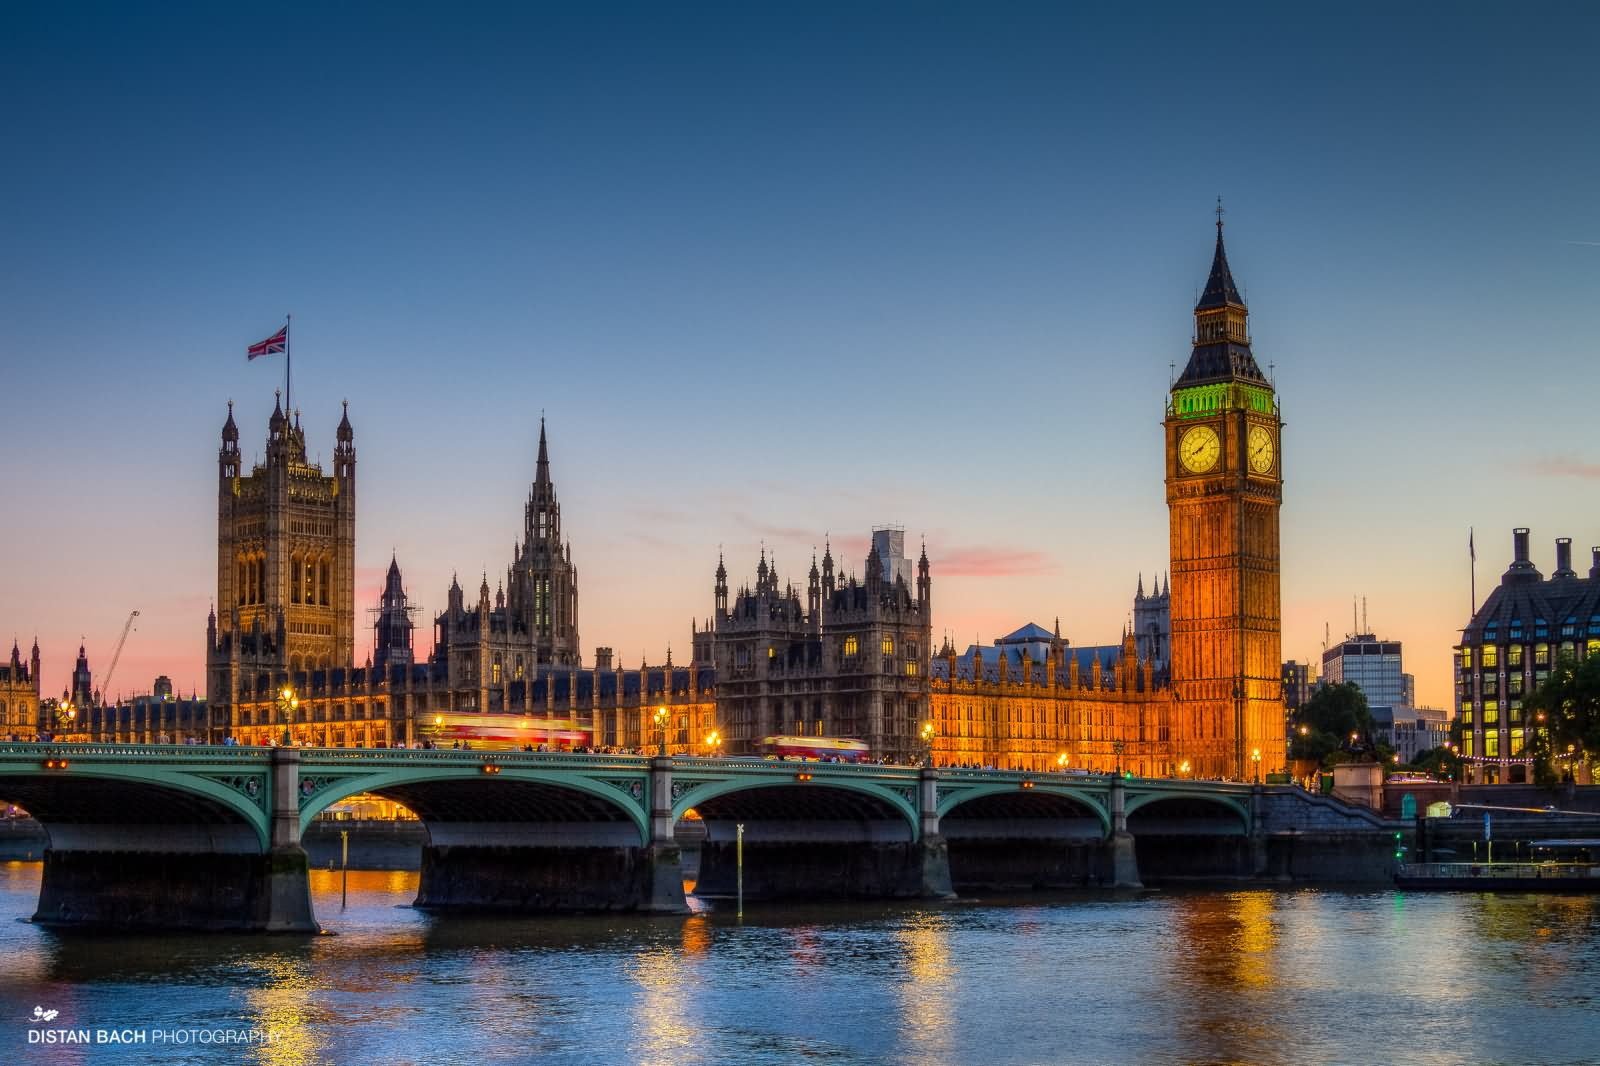 40 Very Beautiful Big Ben, London Images And Pictures